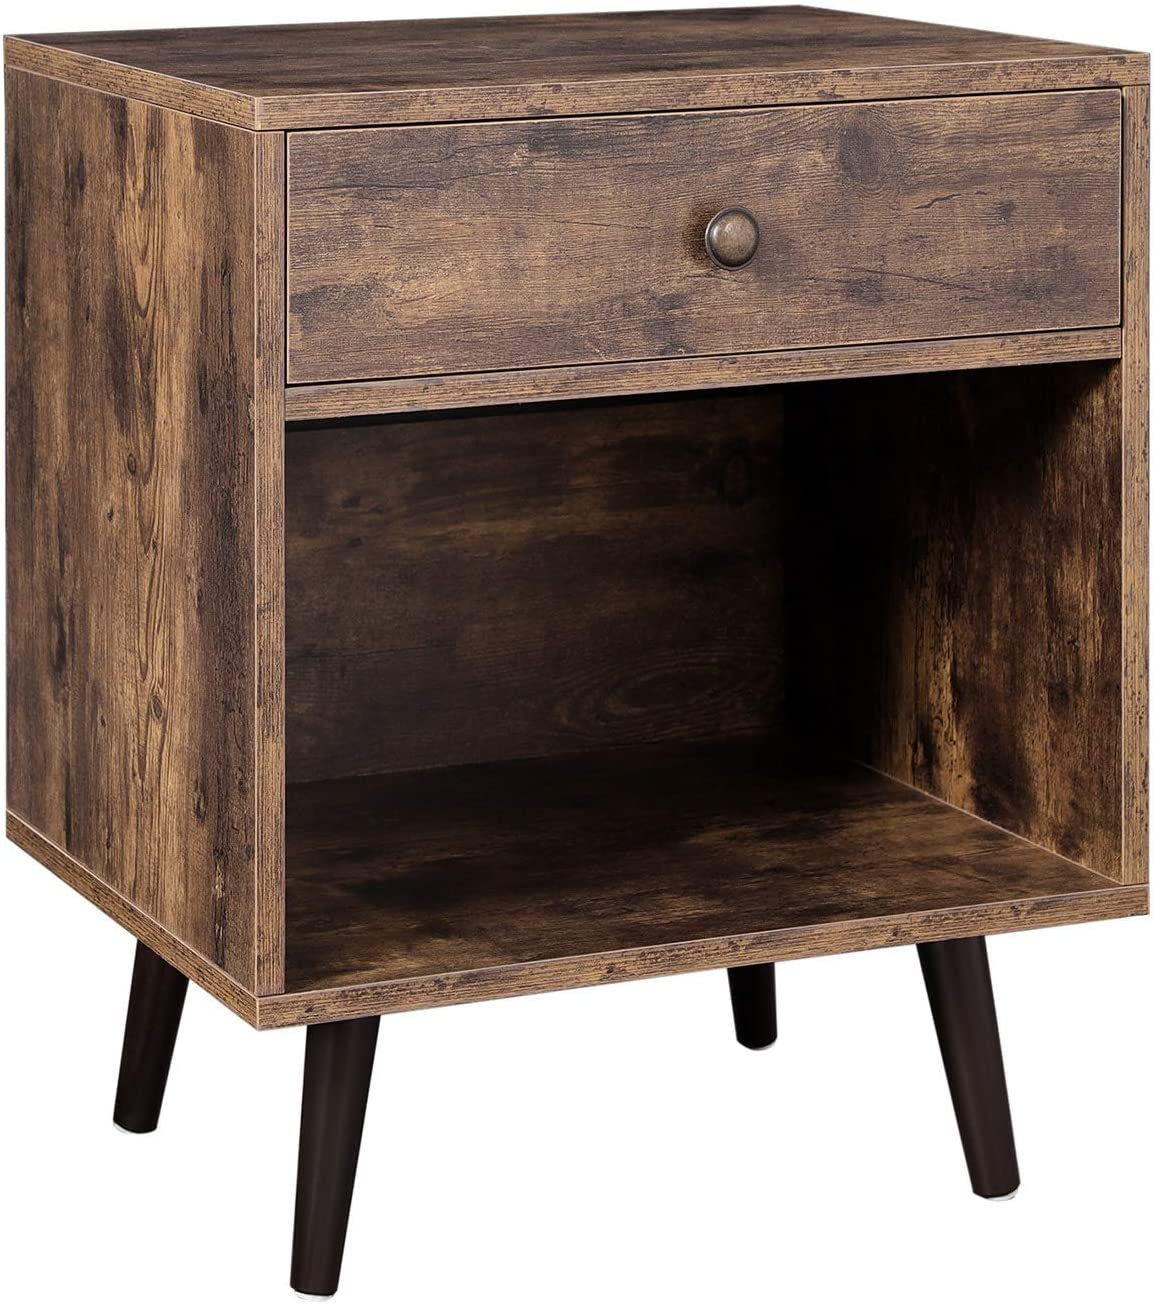 Enjoy fast, free nationwide shipping!  Family owned and operated, HawkinsWoodshop.com is your one stop shop for affordable furniture.  Shop HawkinsWoodshop.com for solid wood & metal modern, traditional, contemporary, industrial, custom, rustic, and farmhouse furniture including our Ryan Open Compartment Mid-Century End Table.